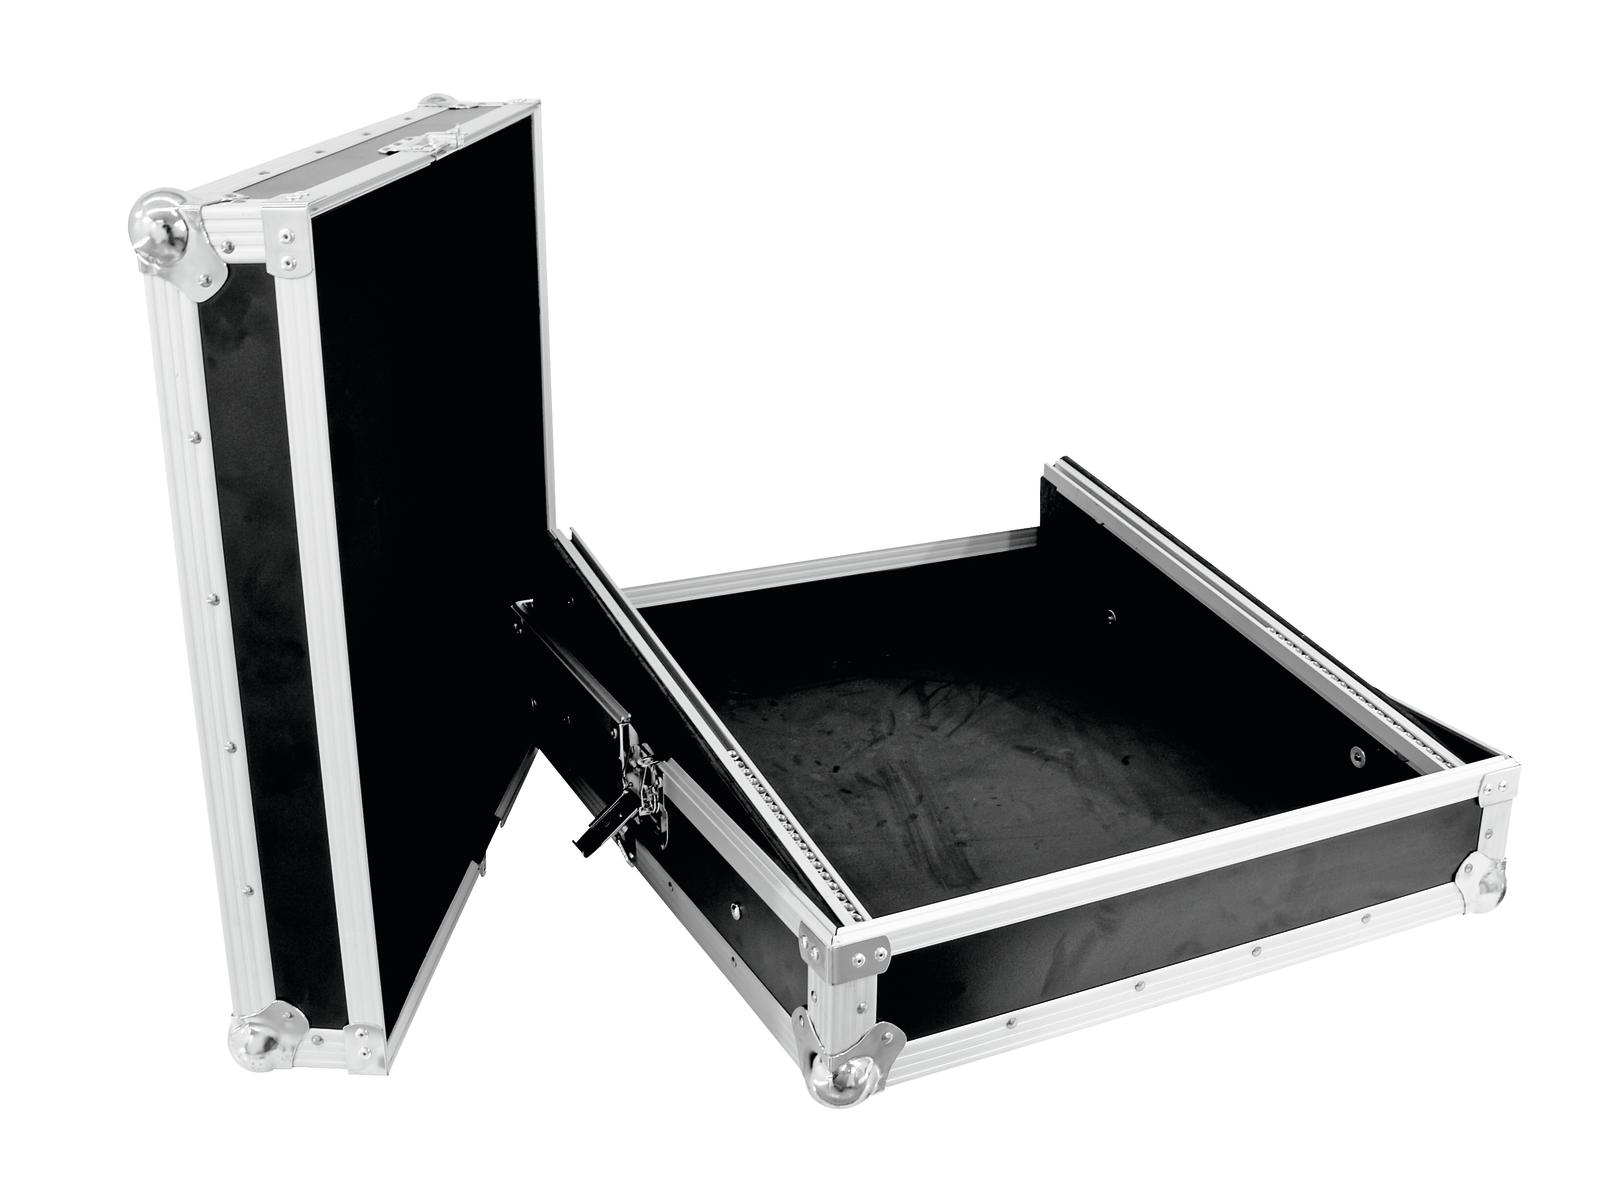 Flight Case Custodia per Dj Mixer Audio Luci Inclinato 10U Roadinger Pro MCB-19